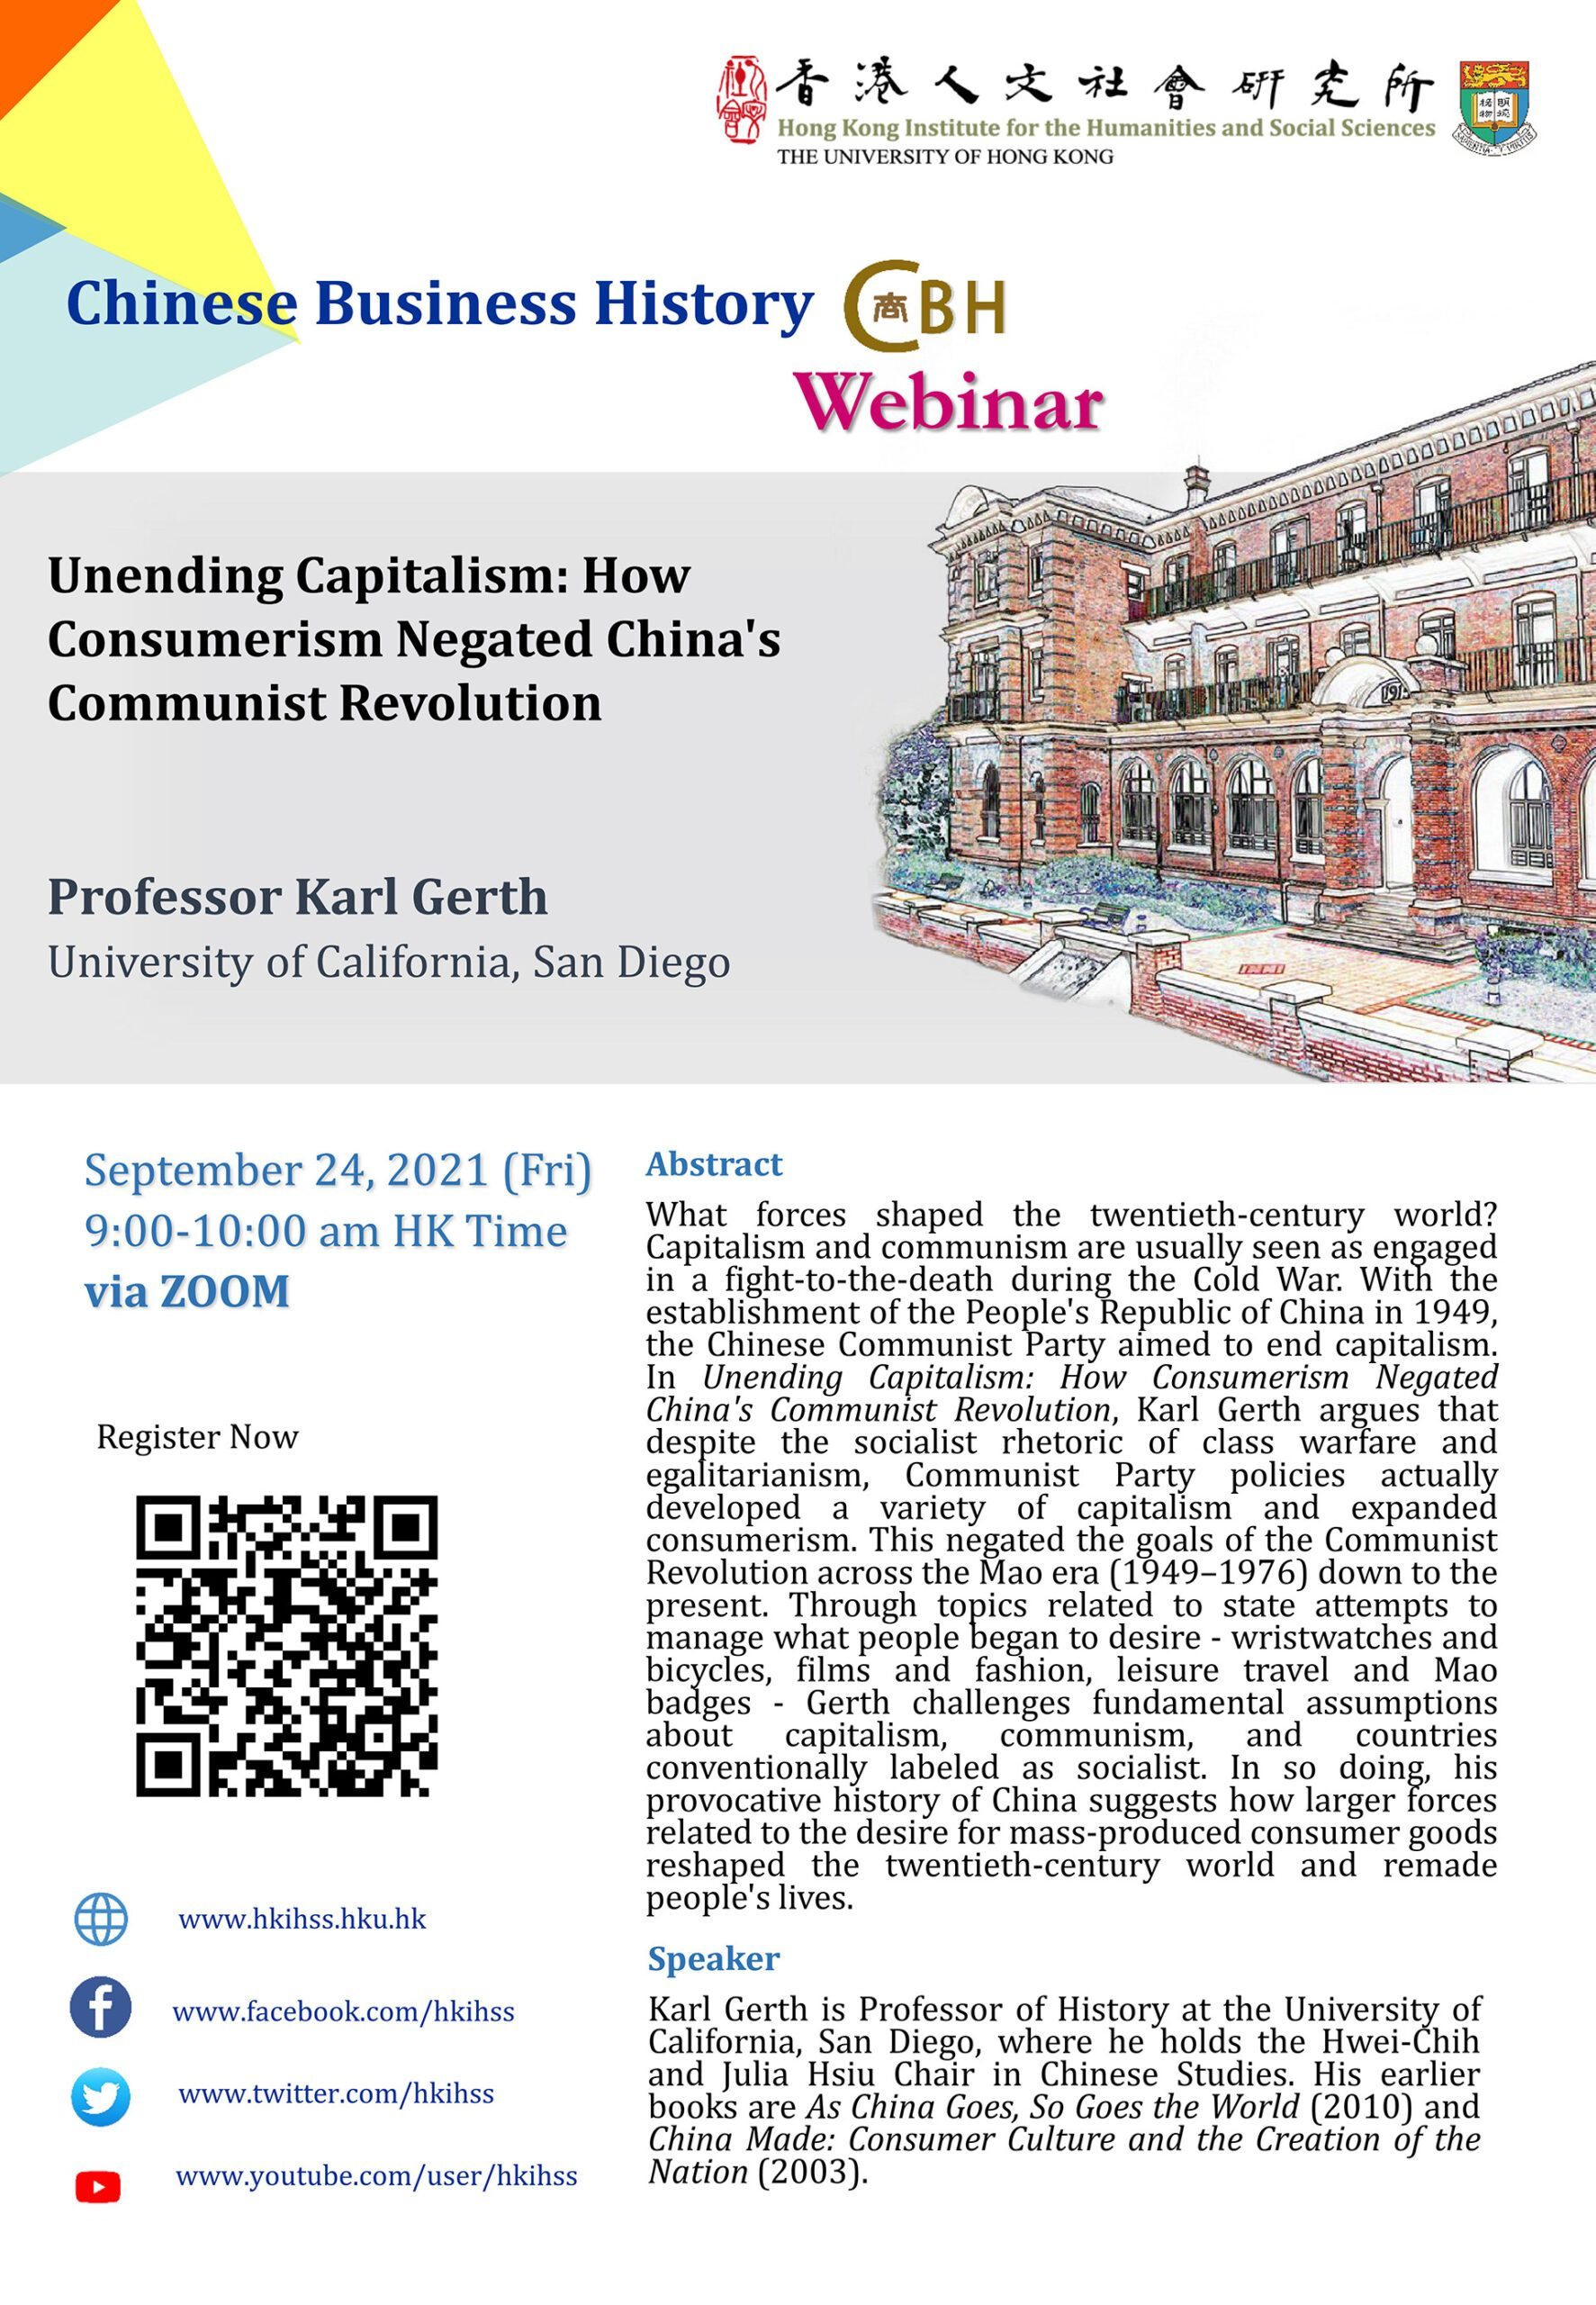 """Chinese Business History Webinar on """"Unending Capitalism: How Consumerism Negated China's Communist Revolution"""" by Professor Karl Gerth (September 24, 2021)"""